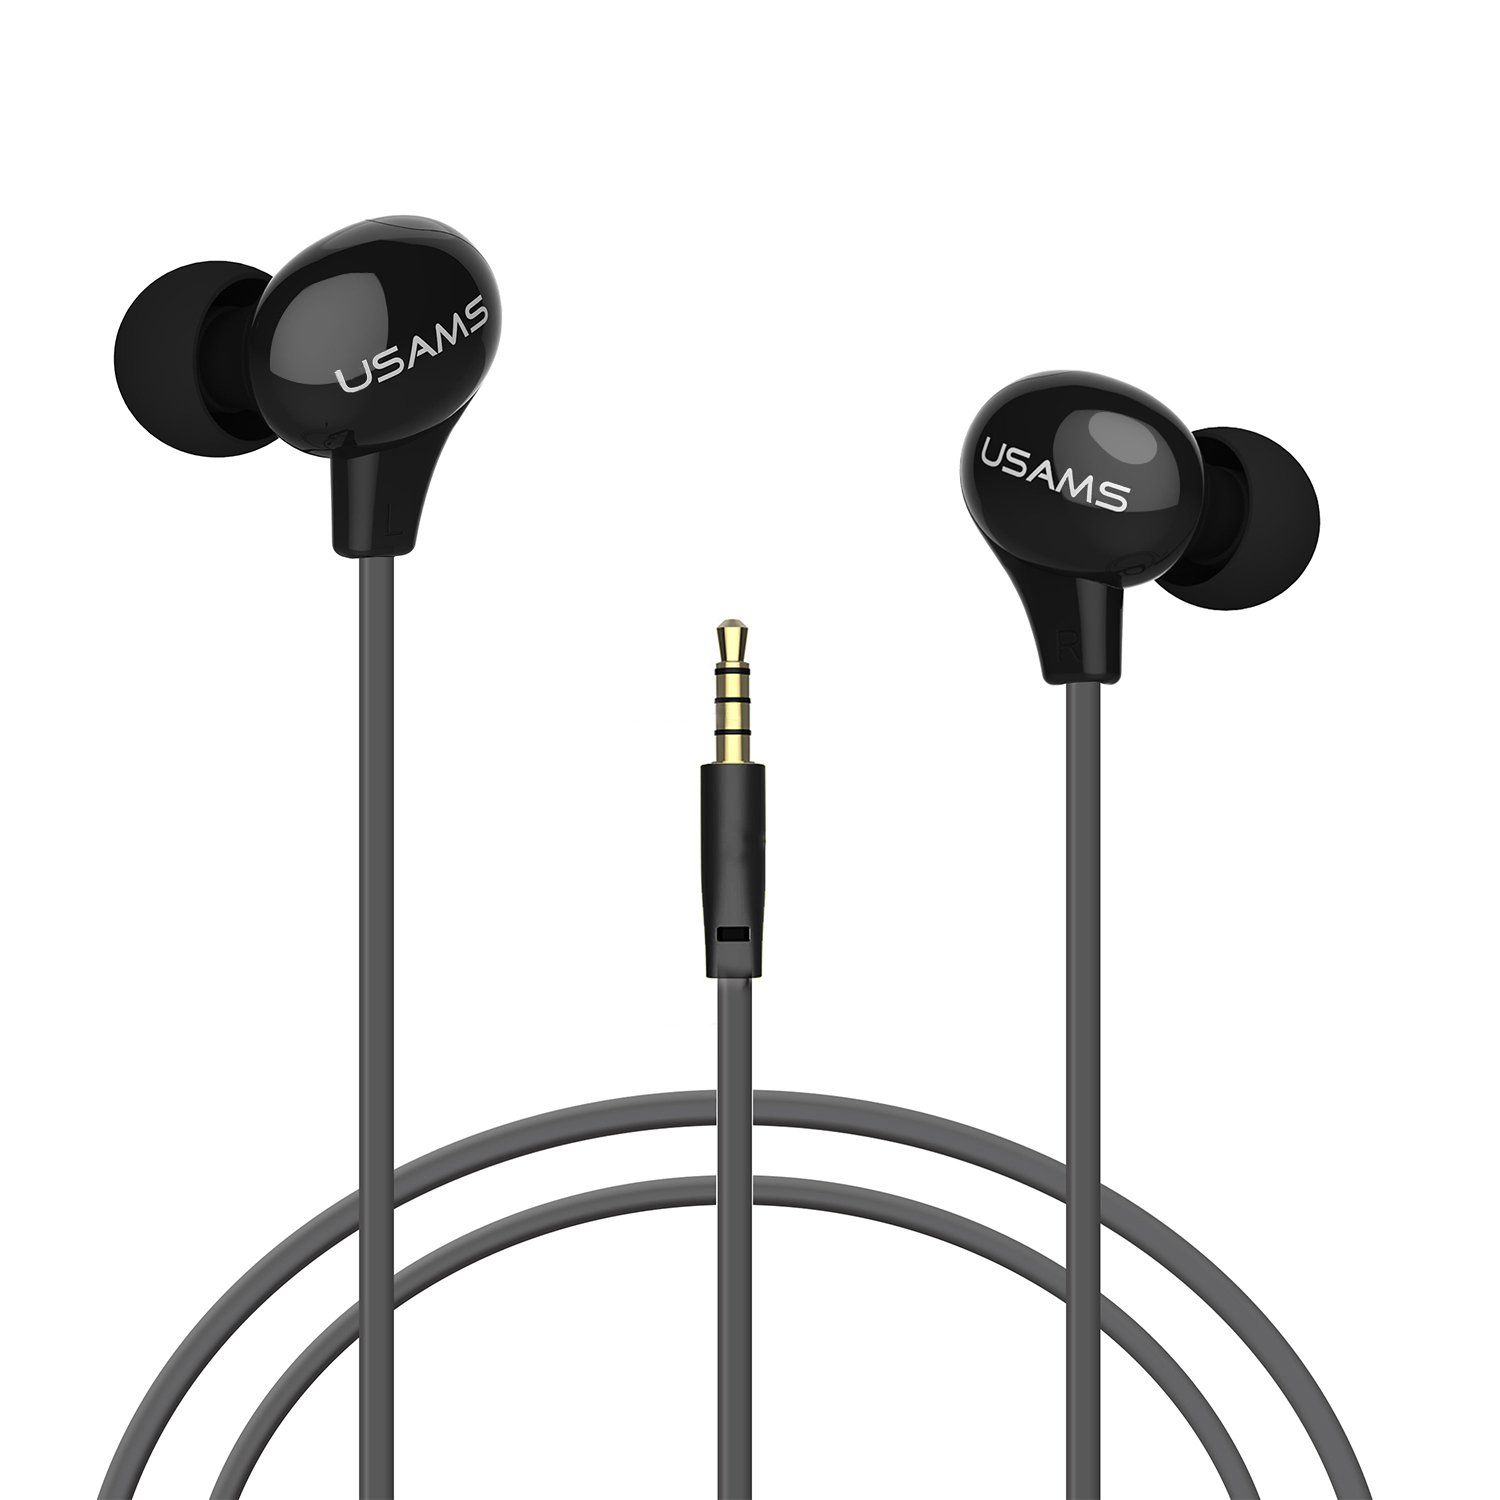 In Ear Earbuds Earphones Dynamic Crystal Clear Bass Ipod Wiring Diagram Sound Headphones With Microphone Ergonomic Comfort Fit Corded Headsets For Iphone Android Ipad